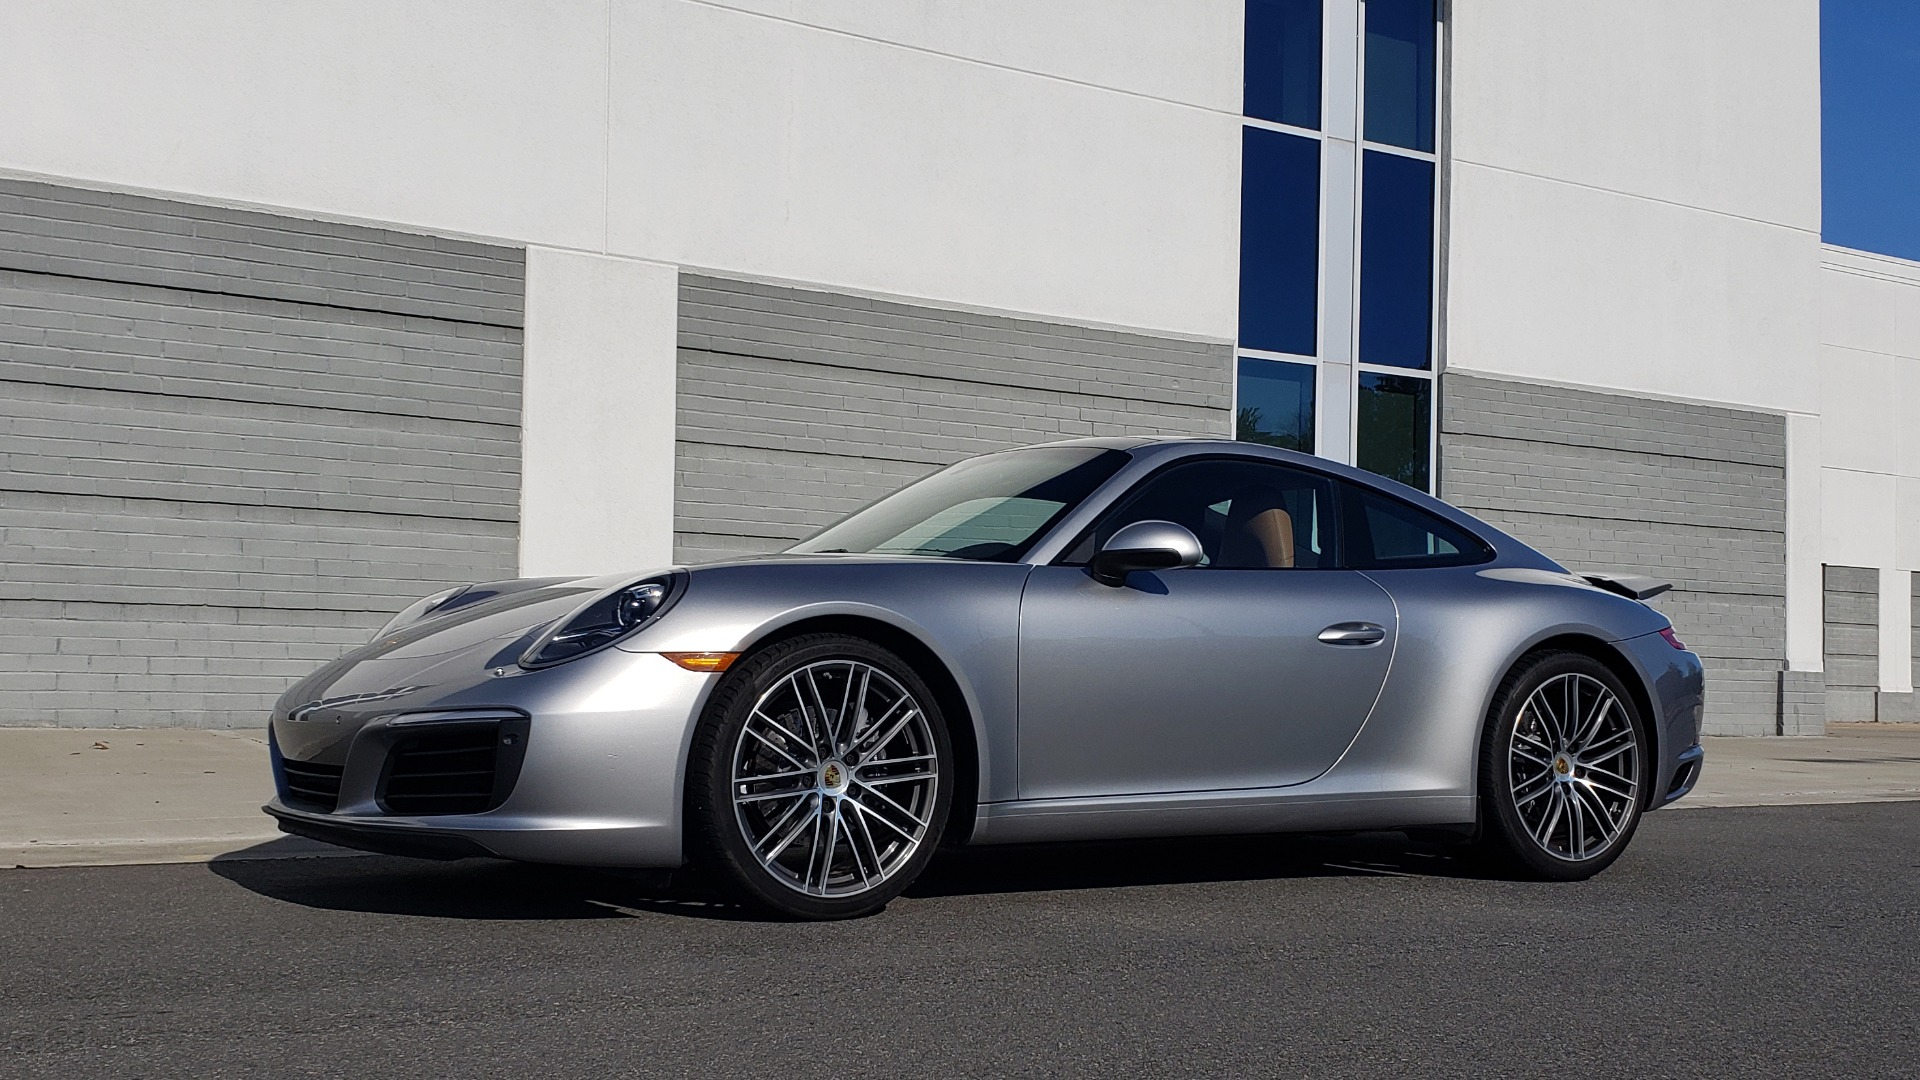 Used 2017 Porsche 911 CARRERA COUPE / 3.0L / 7-SPD MAN / NAV / PDLS / SUNROOF / REARVIEW for sale Sold at Formula Imports in Charlotte NC 28227 3